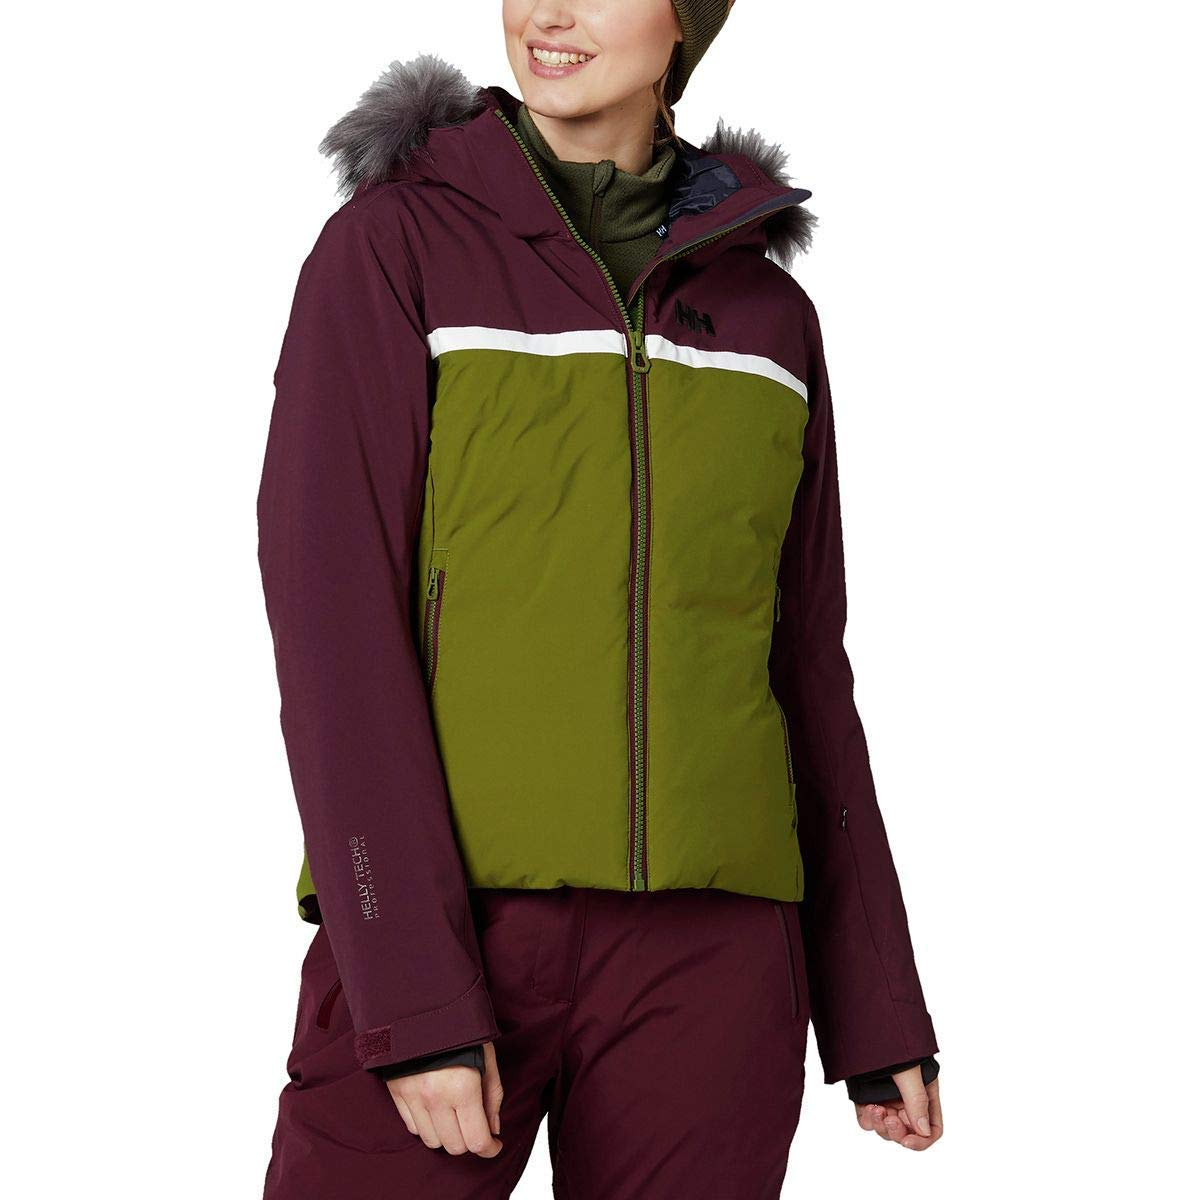 461e0ab11b Get Quotations · Helly Hansen Women's Powderstar Waterproof Insulated Ski  Jacket